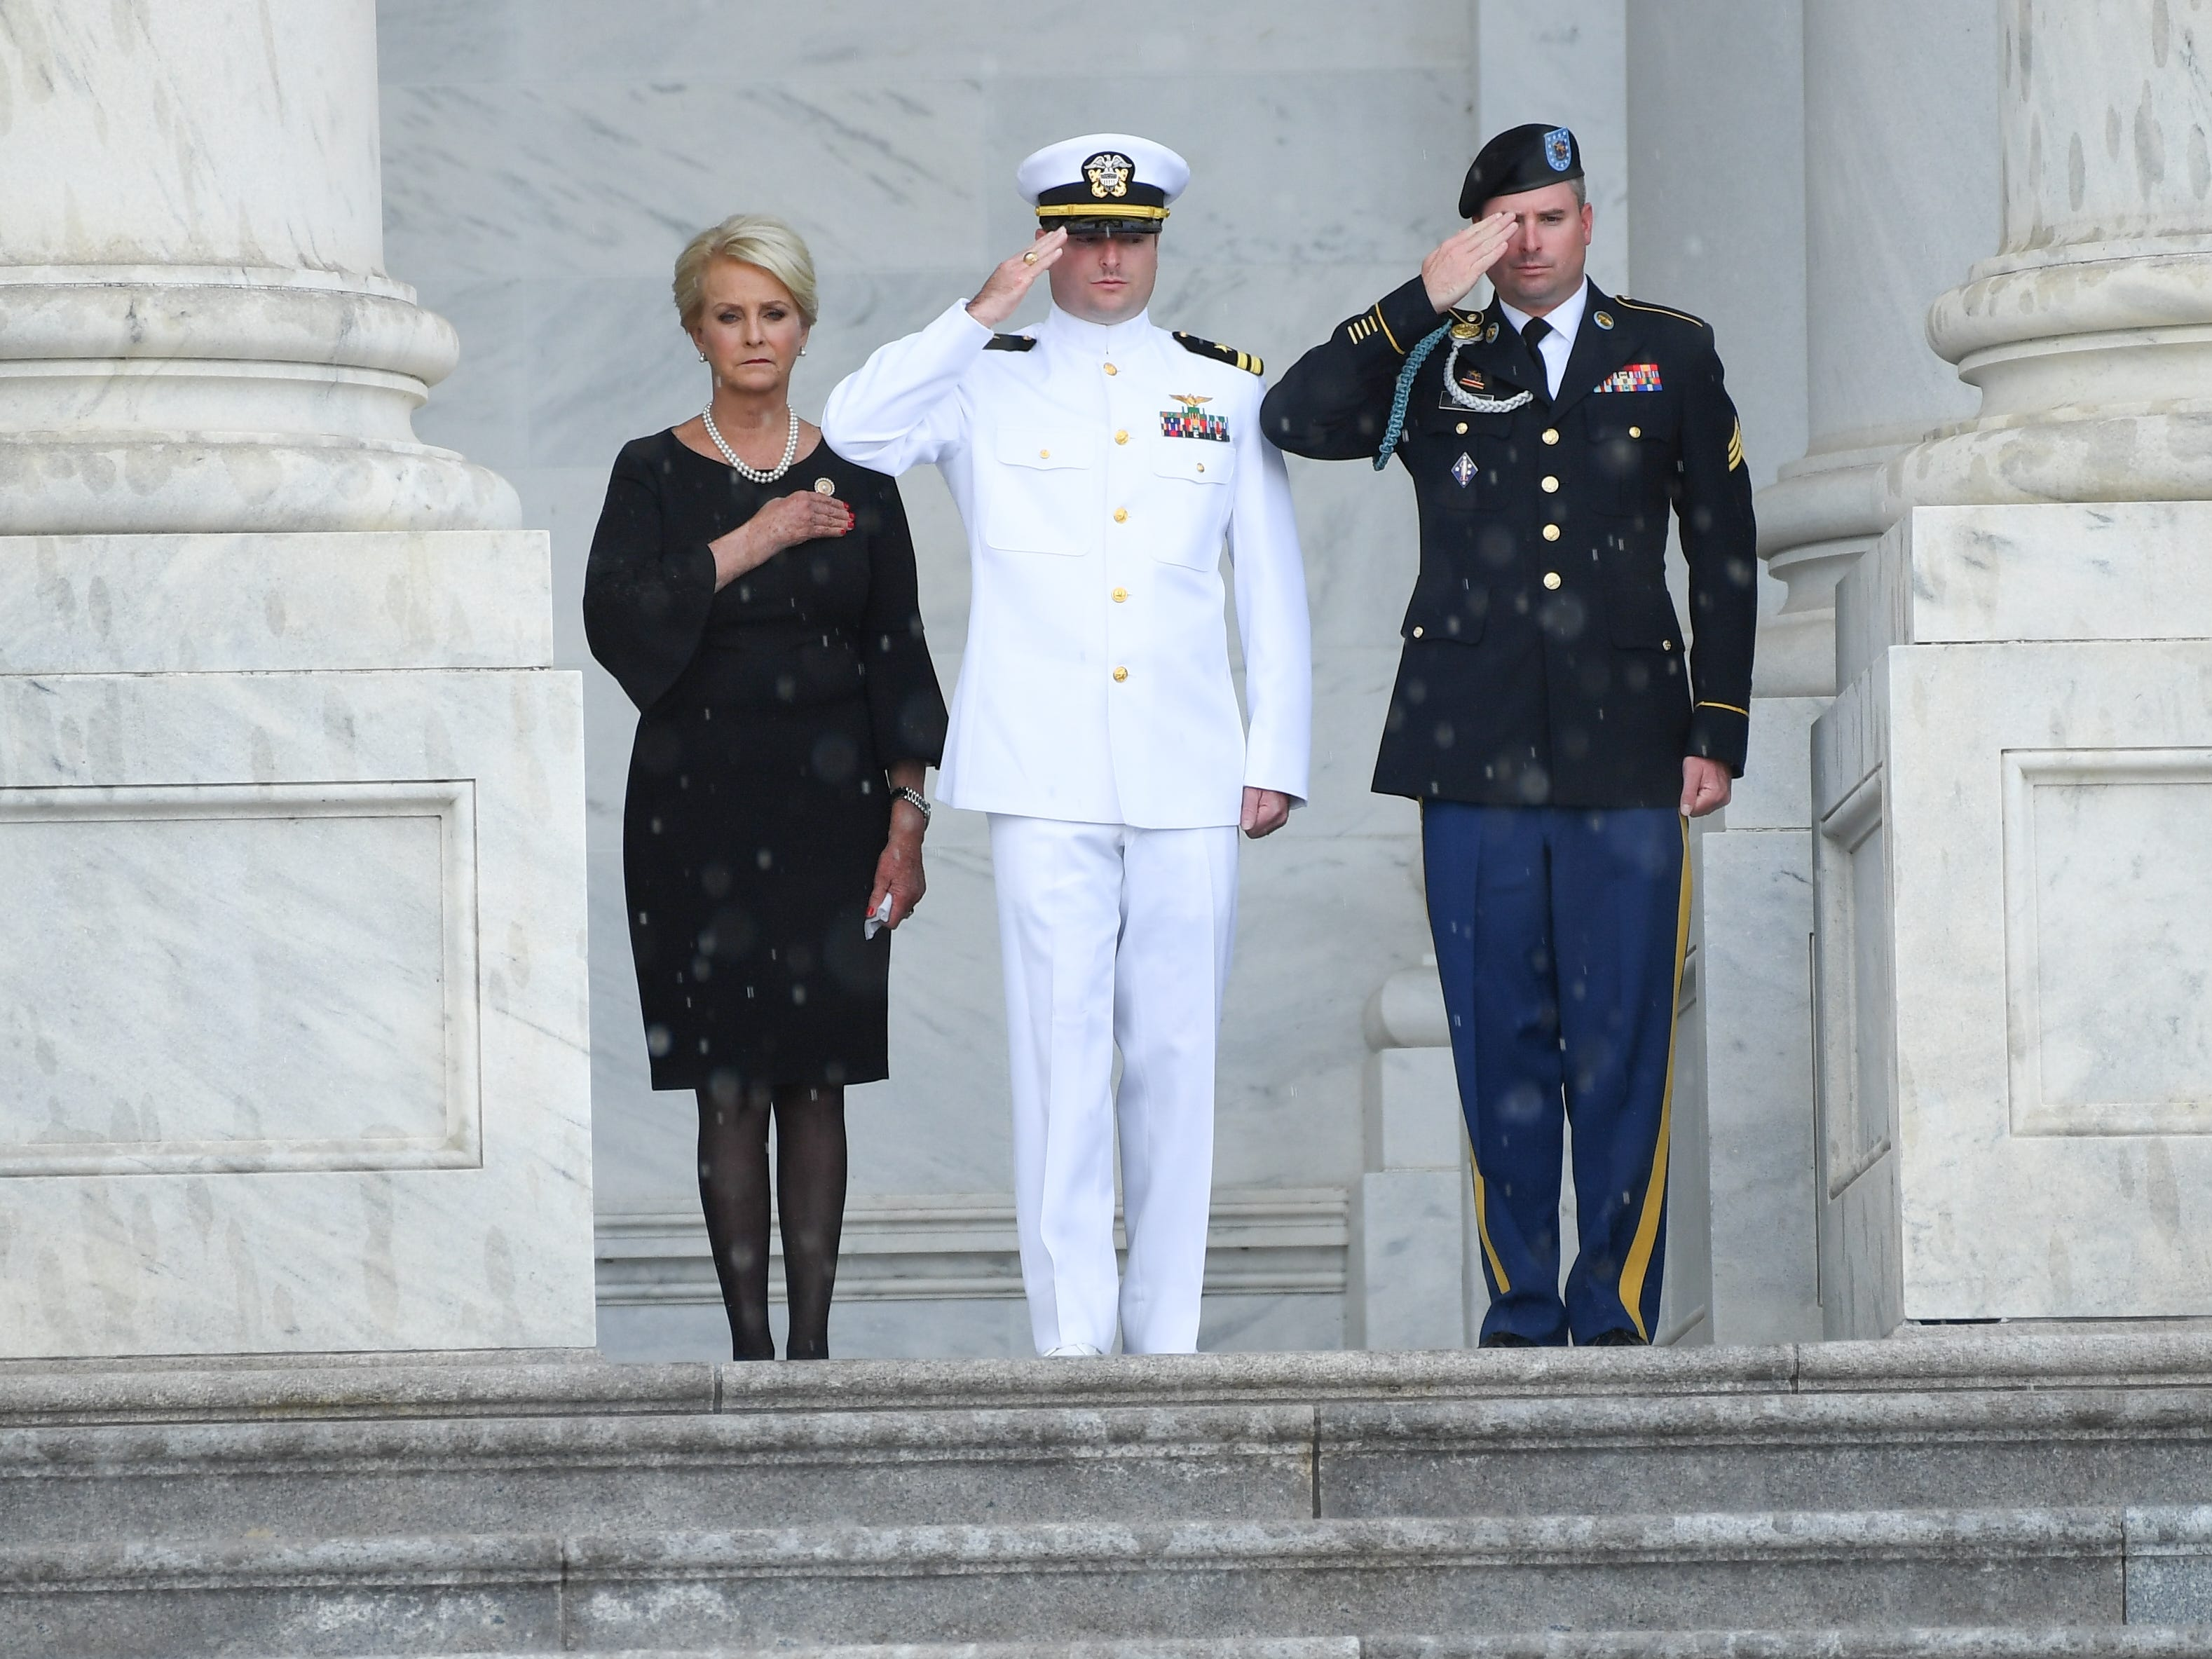 8/31/18 10:43:21 AM -- Washington, DC, U.S.A  -- The casket of John McCain arriving at the U.S. Capitol while his wife Cindy McCain watching along with her two sons Jack and Jimmy McCain at the U.S. Capitol in Washington on Aug. 31, 2018 in Washington. Sen. McCain died on Aug. 25. --    Photo by Jack Gruber, USA TODAY Staff ORG XMIT:  JG 137435 McCain U.S. Capi 8/31 (Via OlyDrop)